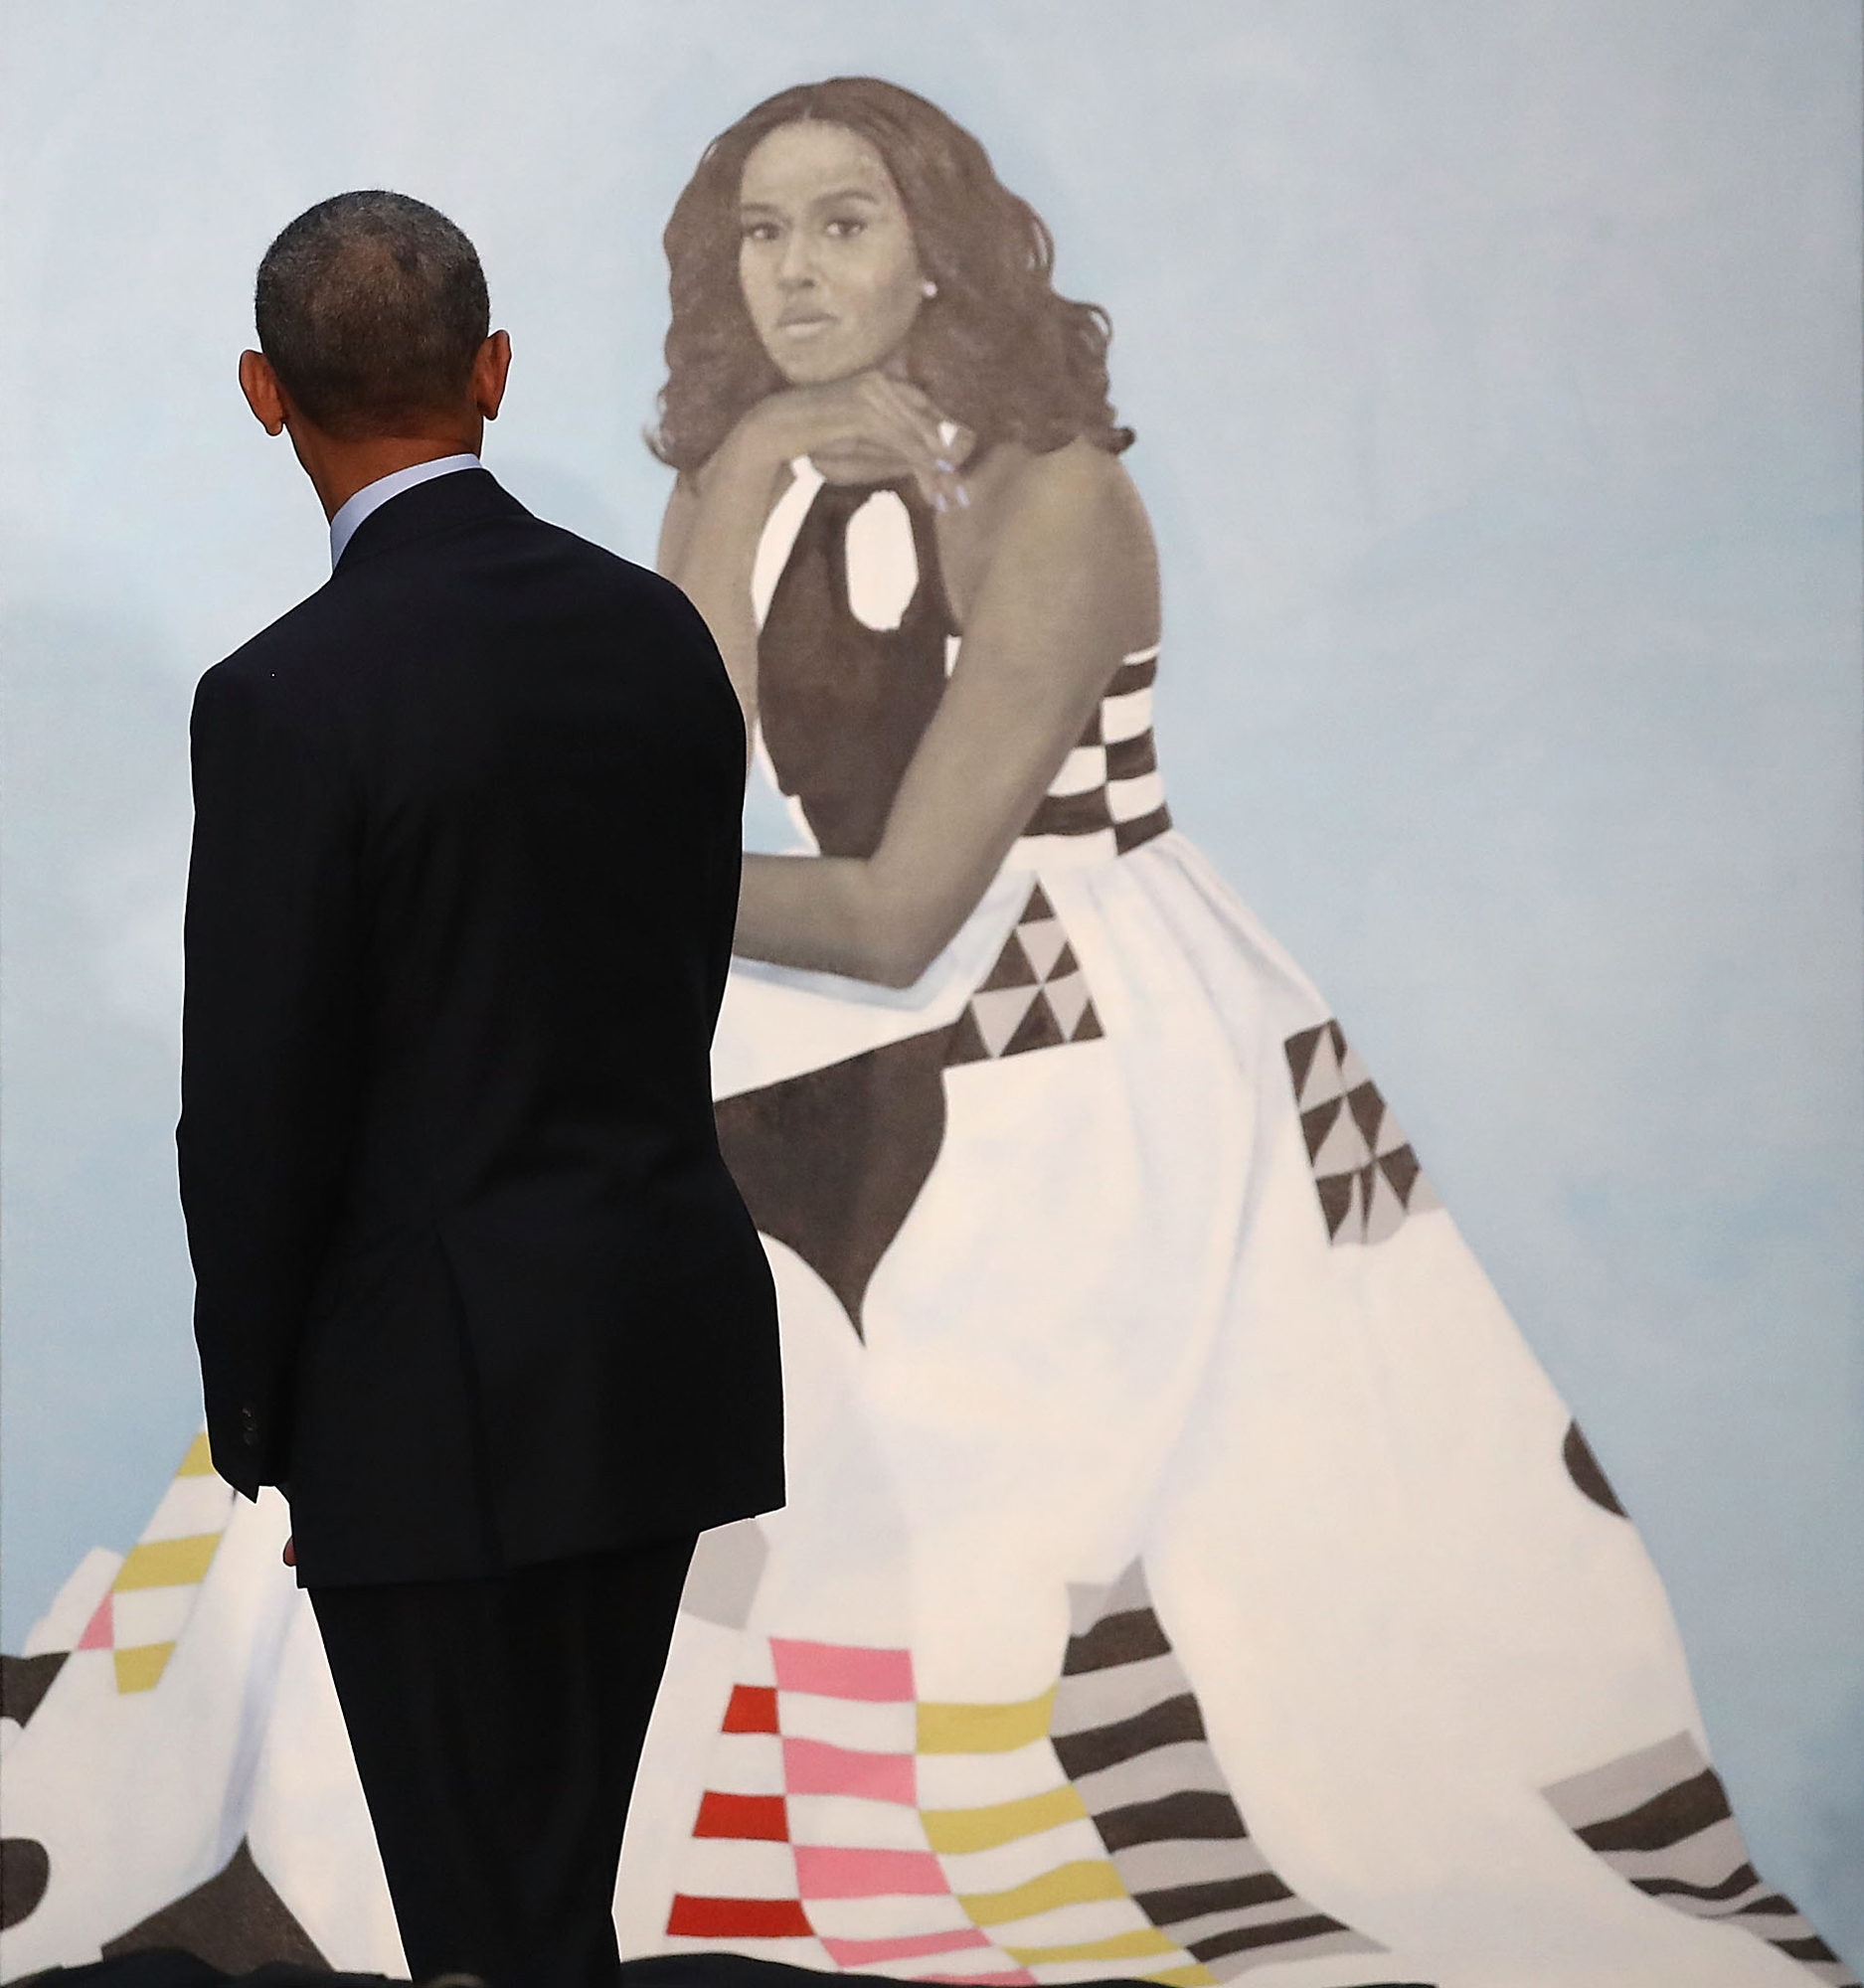 20324e1828a Former U.S. president Barack Obama looks at former first lady Michelle  Obama s newly unveiled portrait during a ceremony at the Smithsonian s  National ...